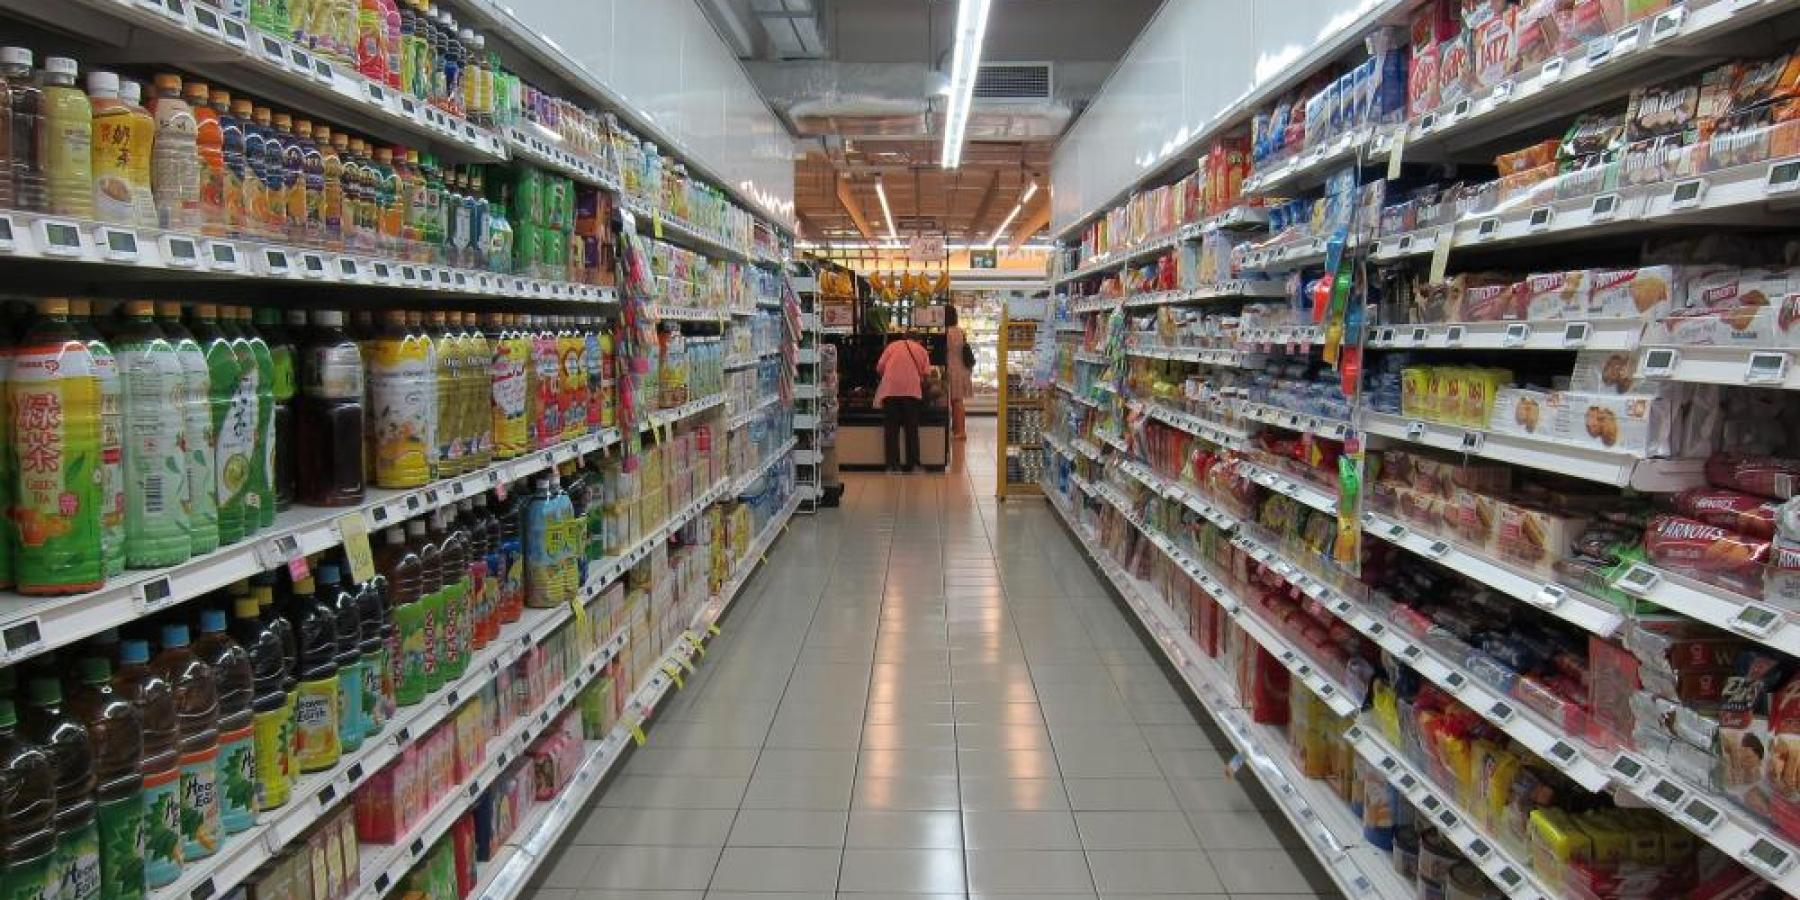 Grocery store / supermarket © ccipeggy from Pixabay